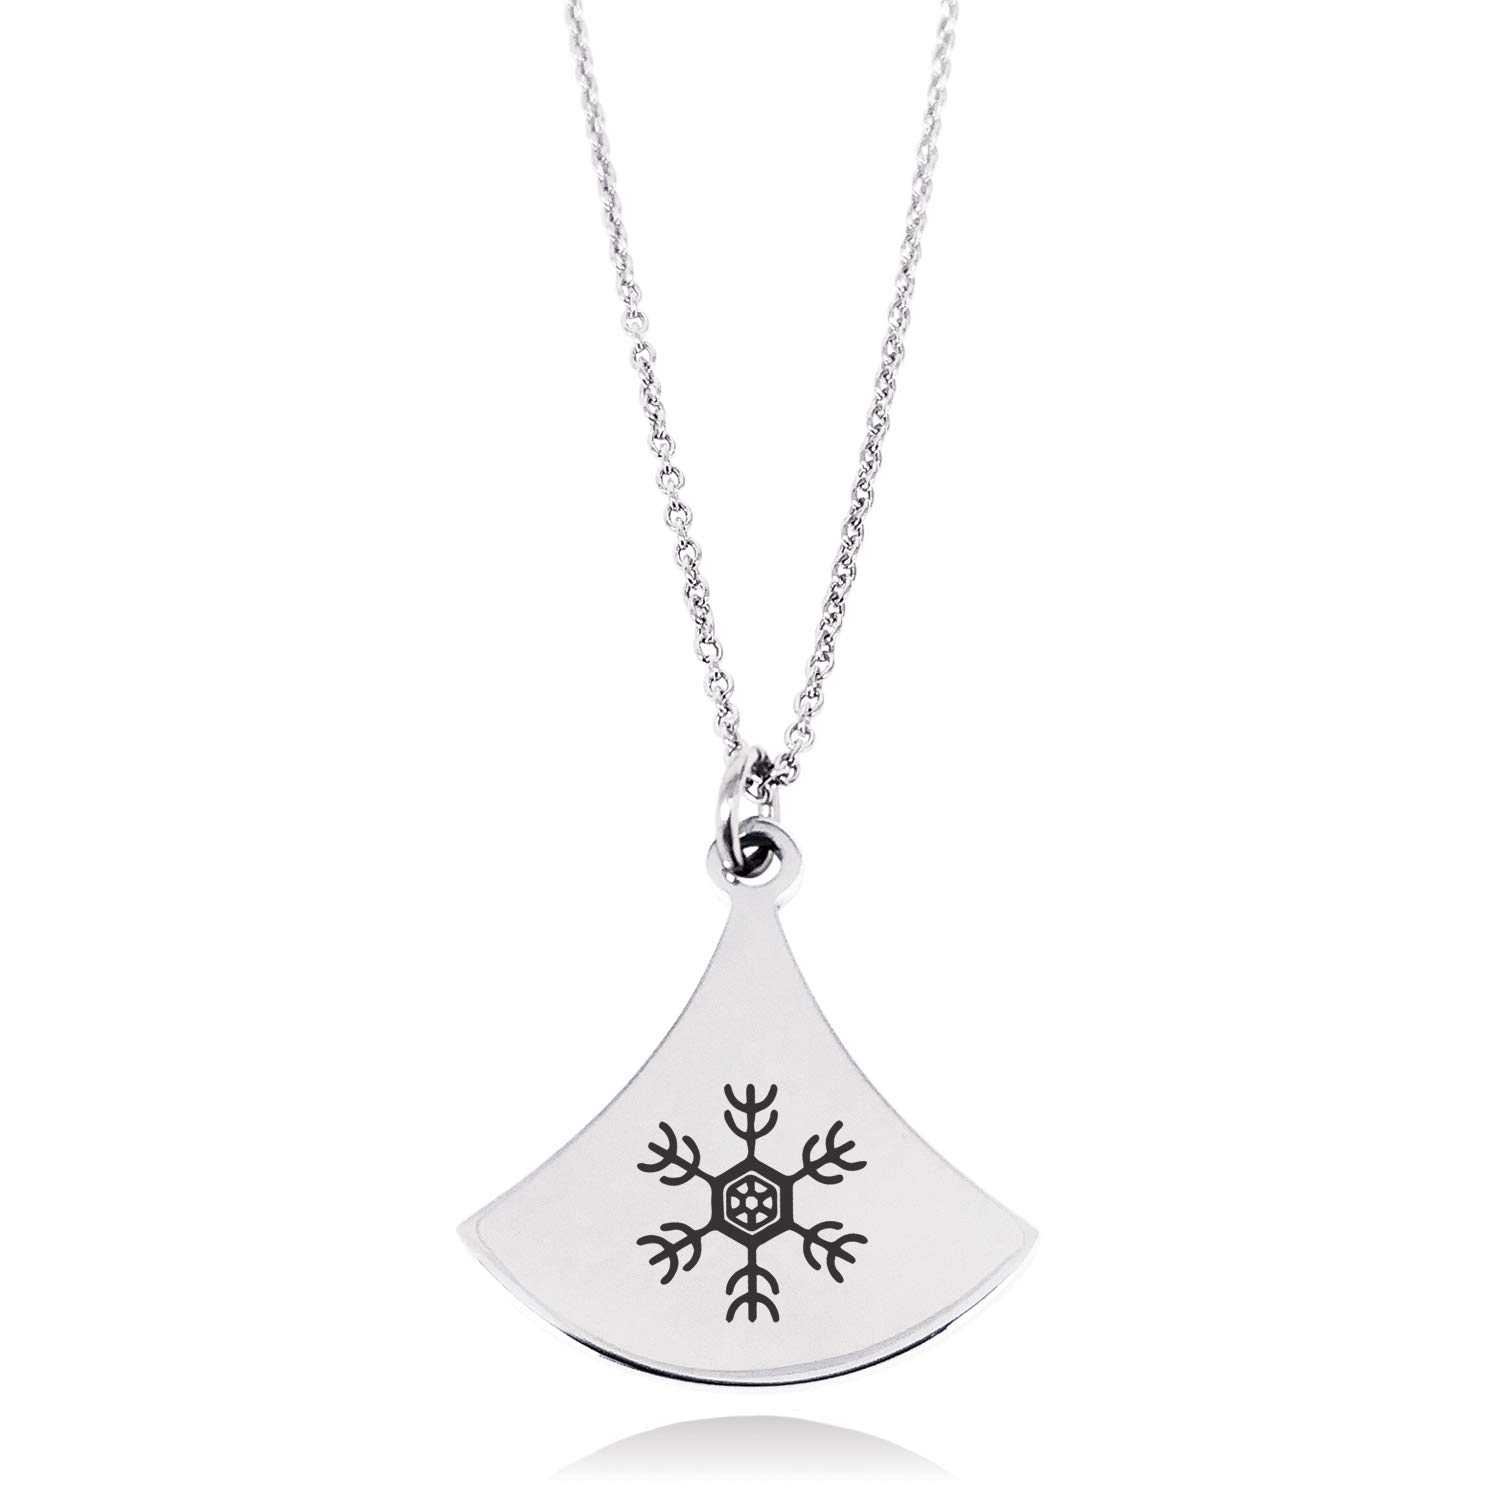 Stainless Steel Antlers Snowflake Pendulum Curved Triangle Charm Pendant Necklace